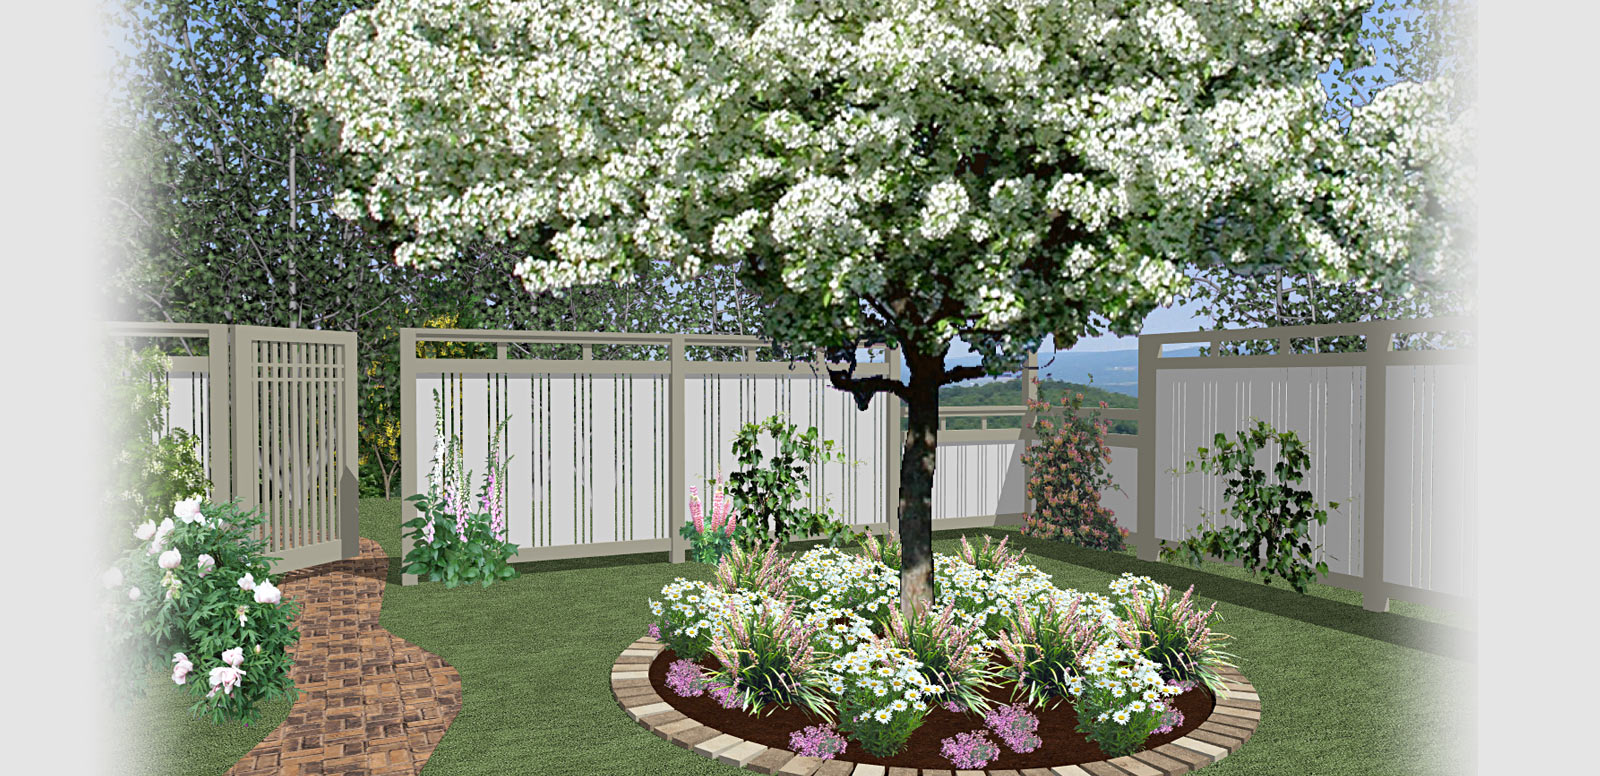 Home designer software for deck and landscape software projects a fenced in backyard baanklon Gallery